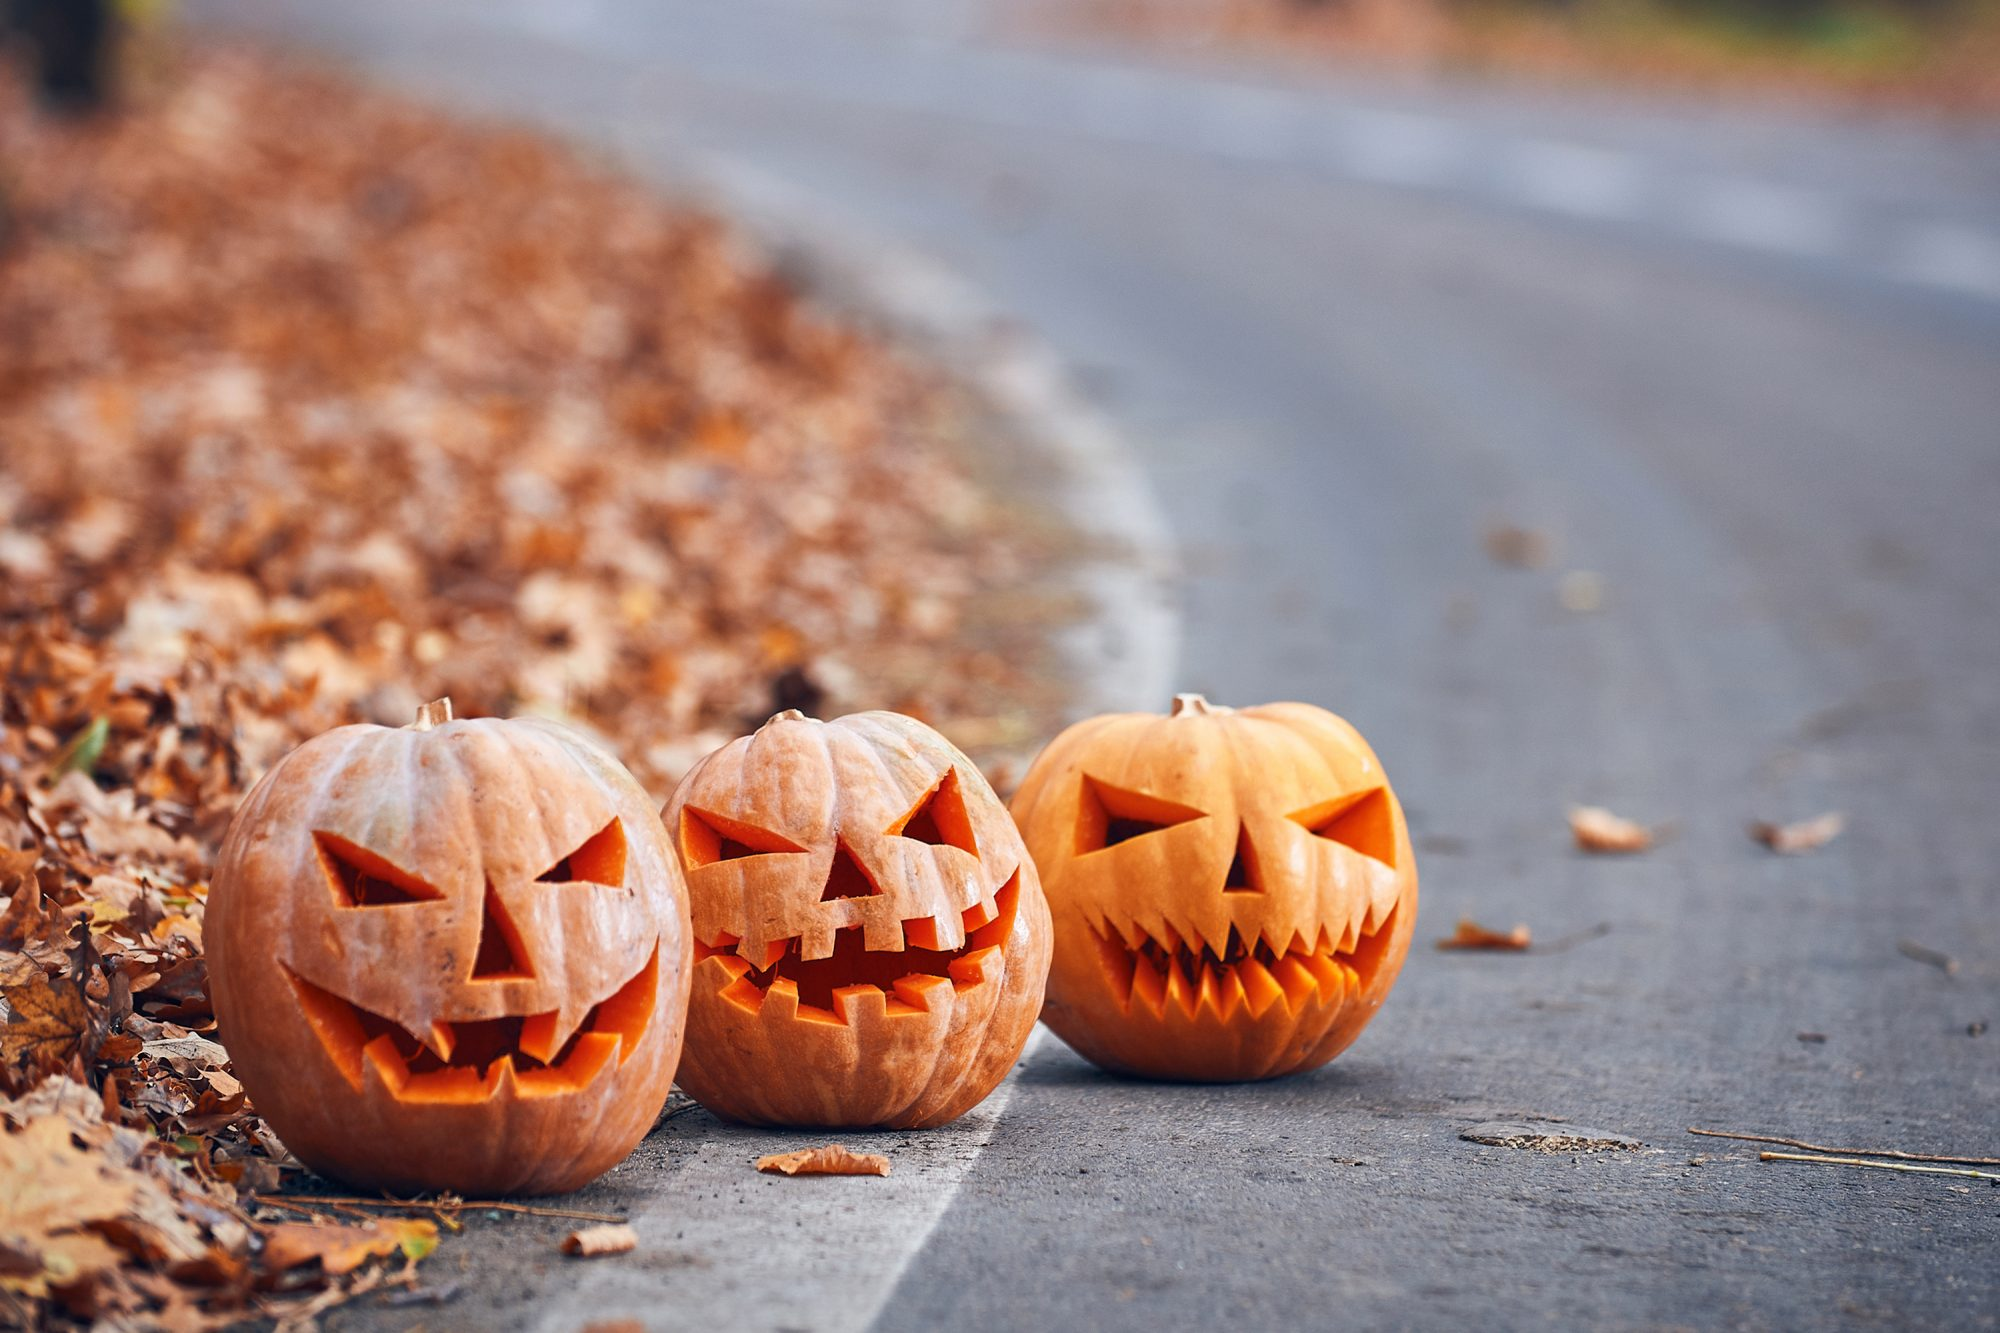 haunted places in the us: pumpkins with scary faces